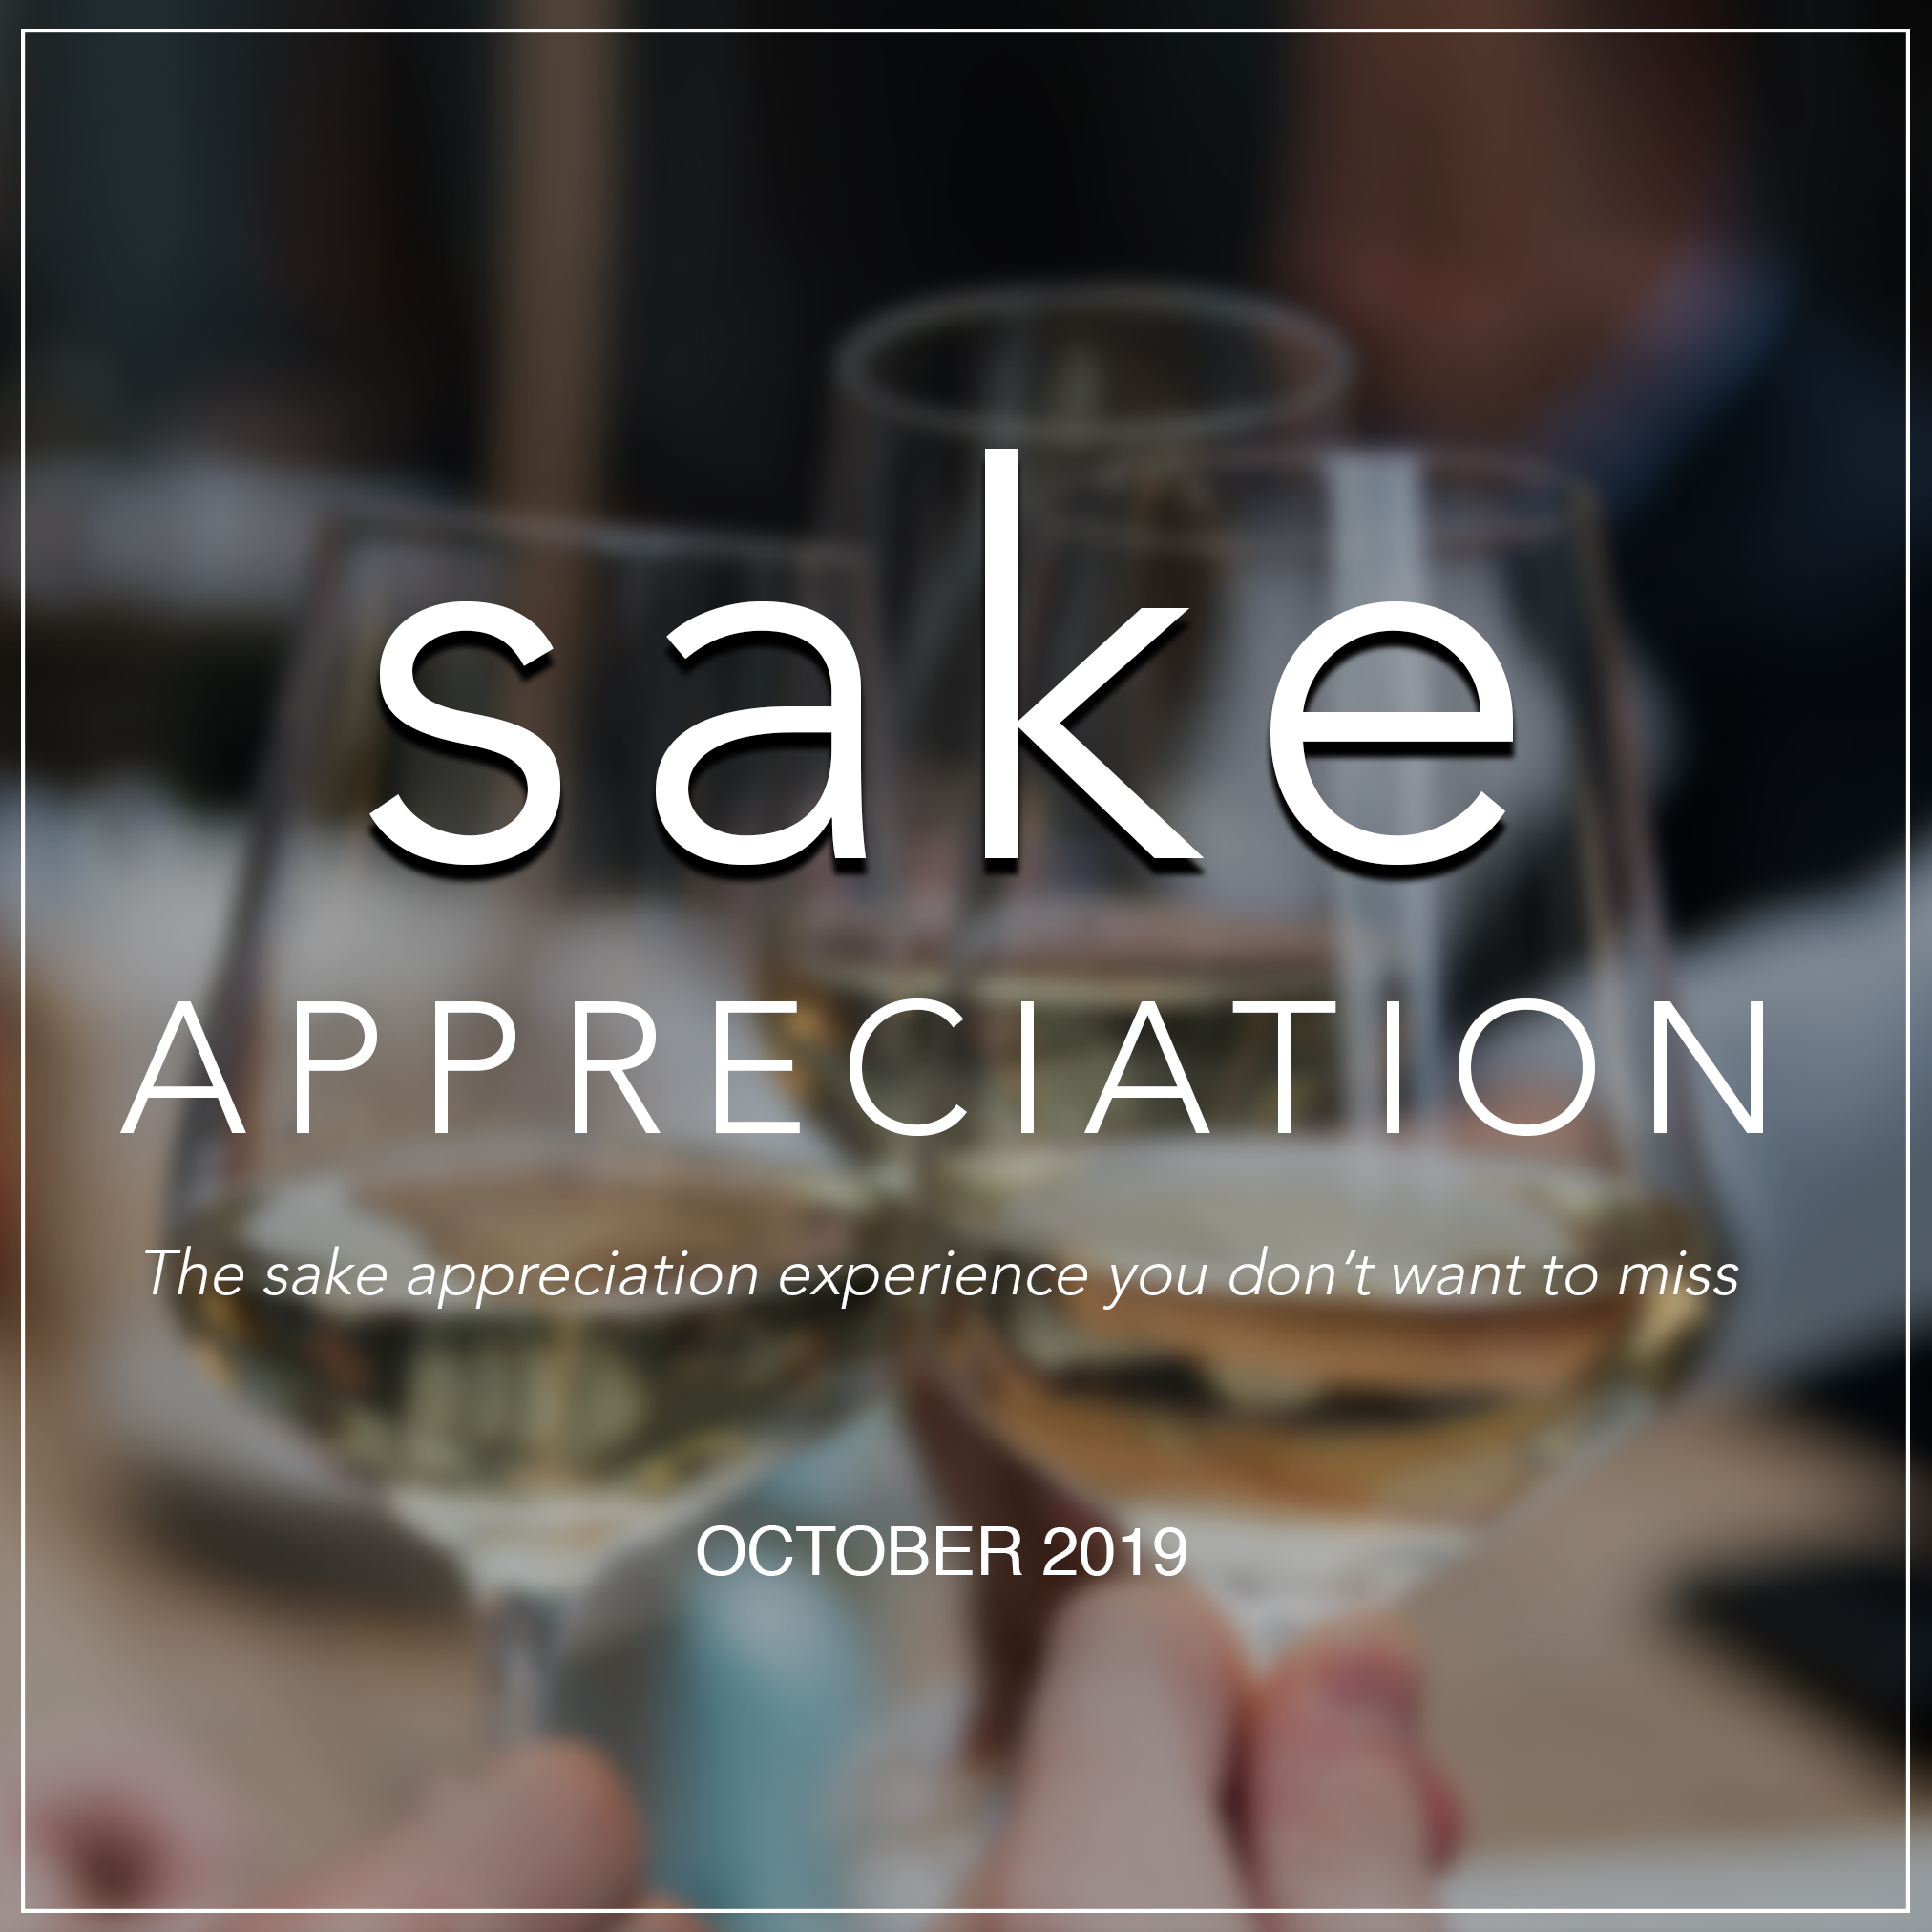 Sake Appreciation Experience October 2019